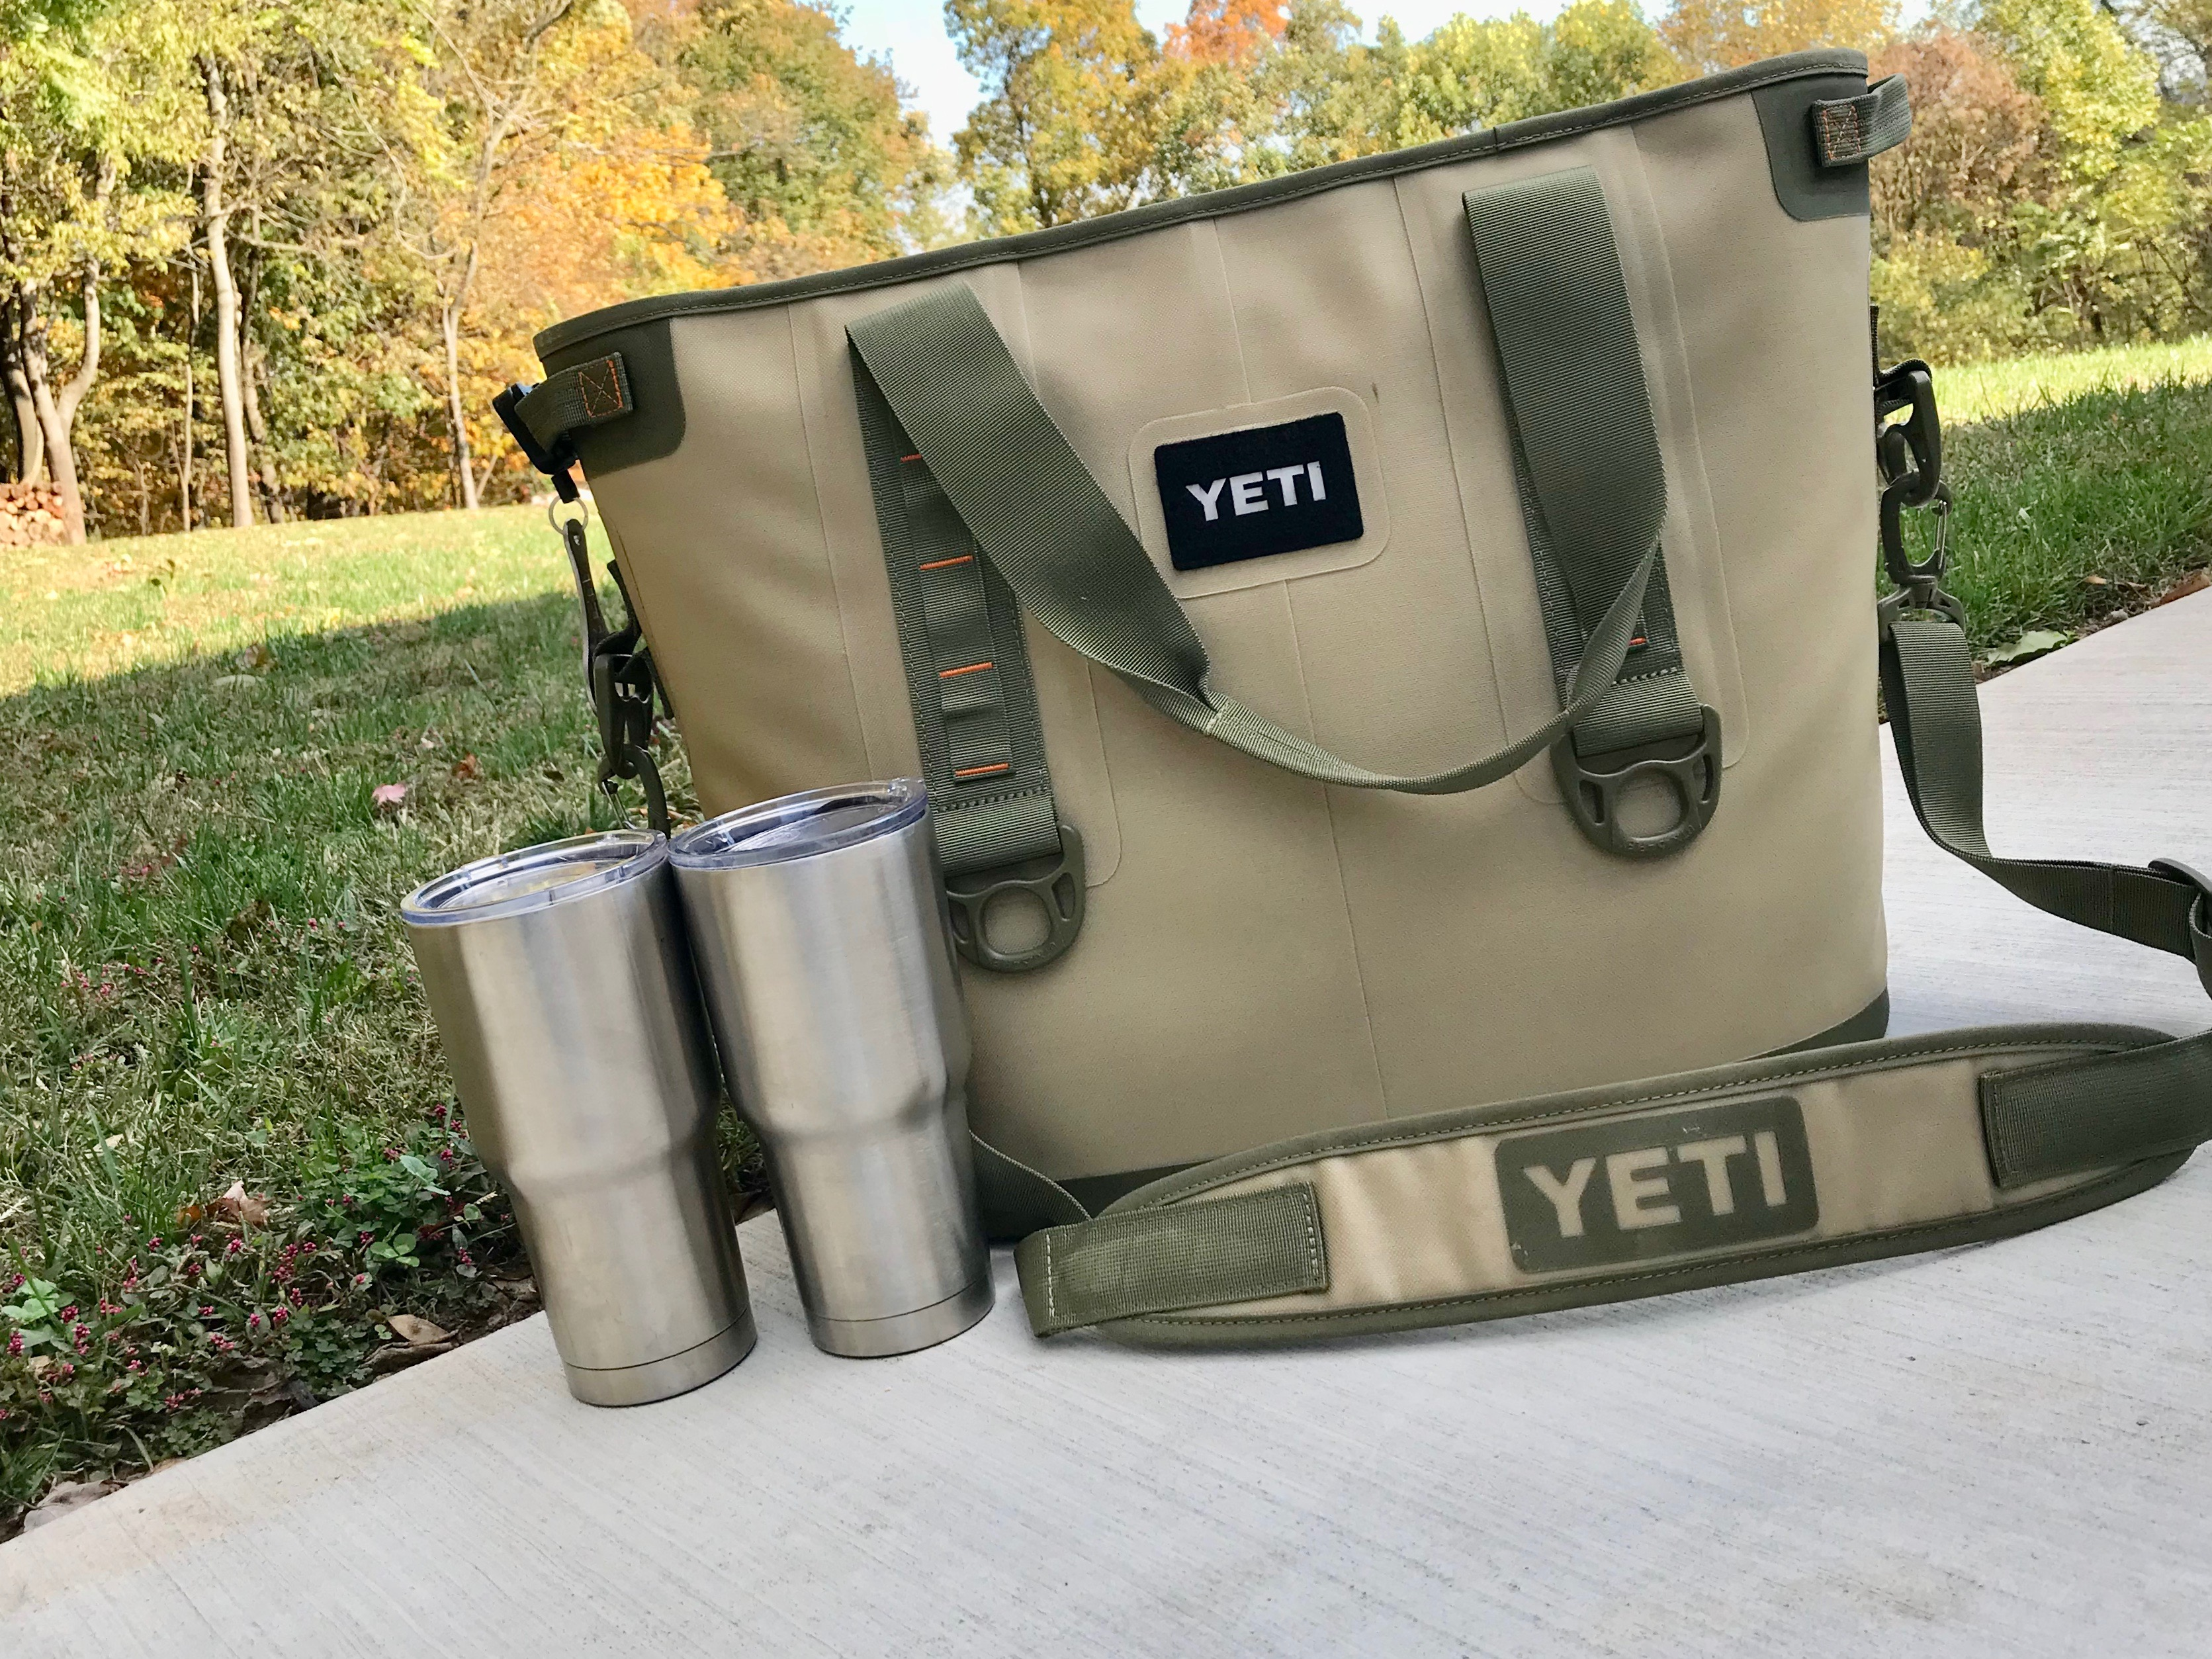 YETI Bundle with tote and insulated cups